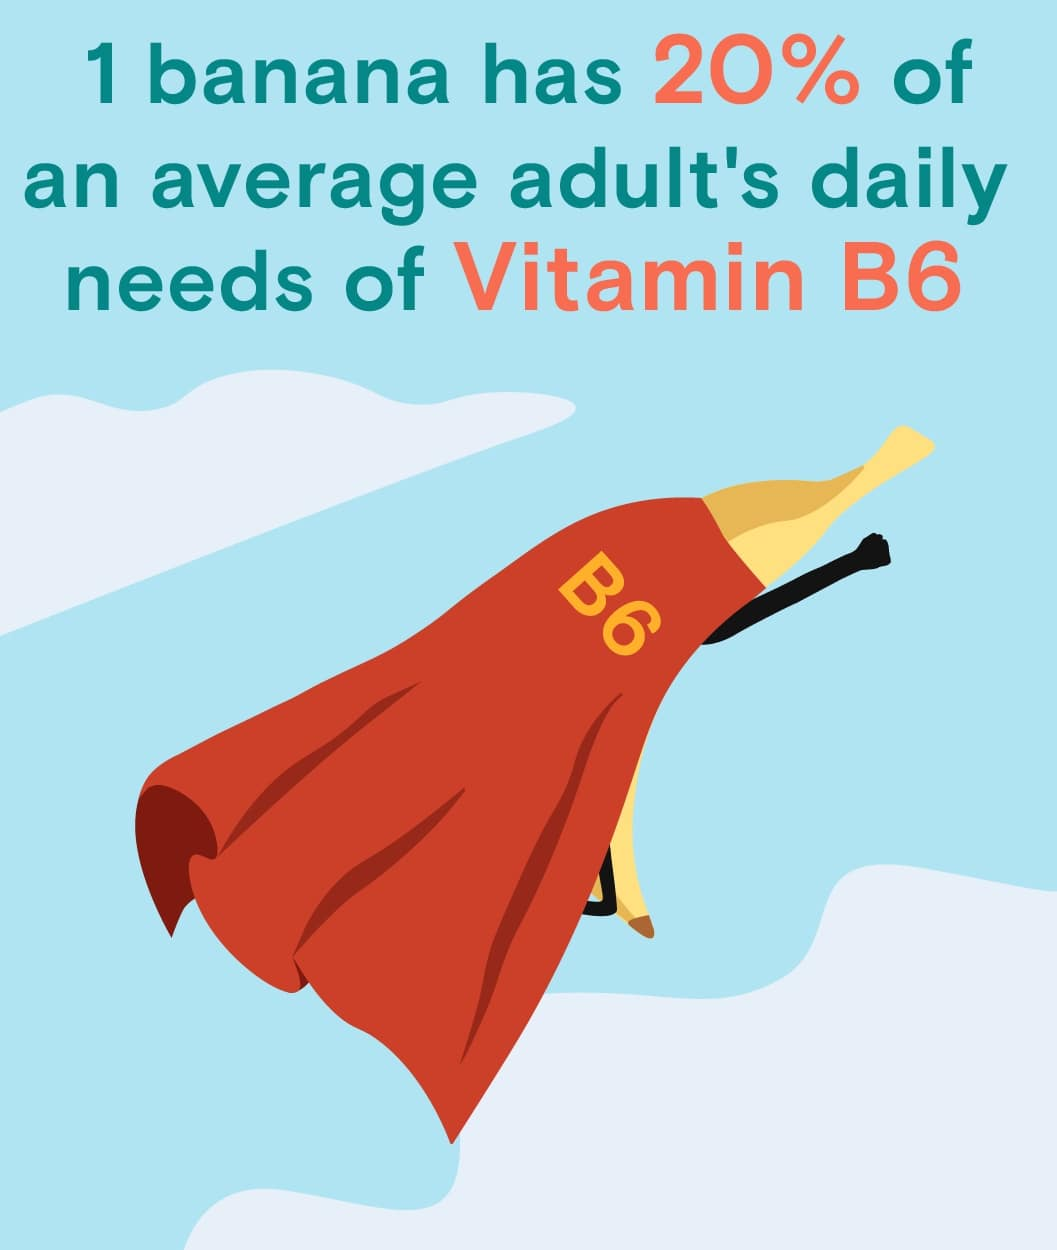 One banana has 20% of an average adult's daily needs of Vitamin B6